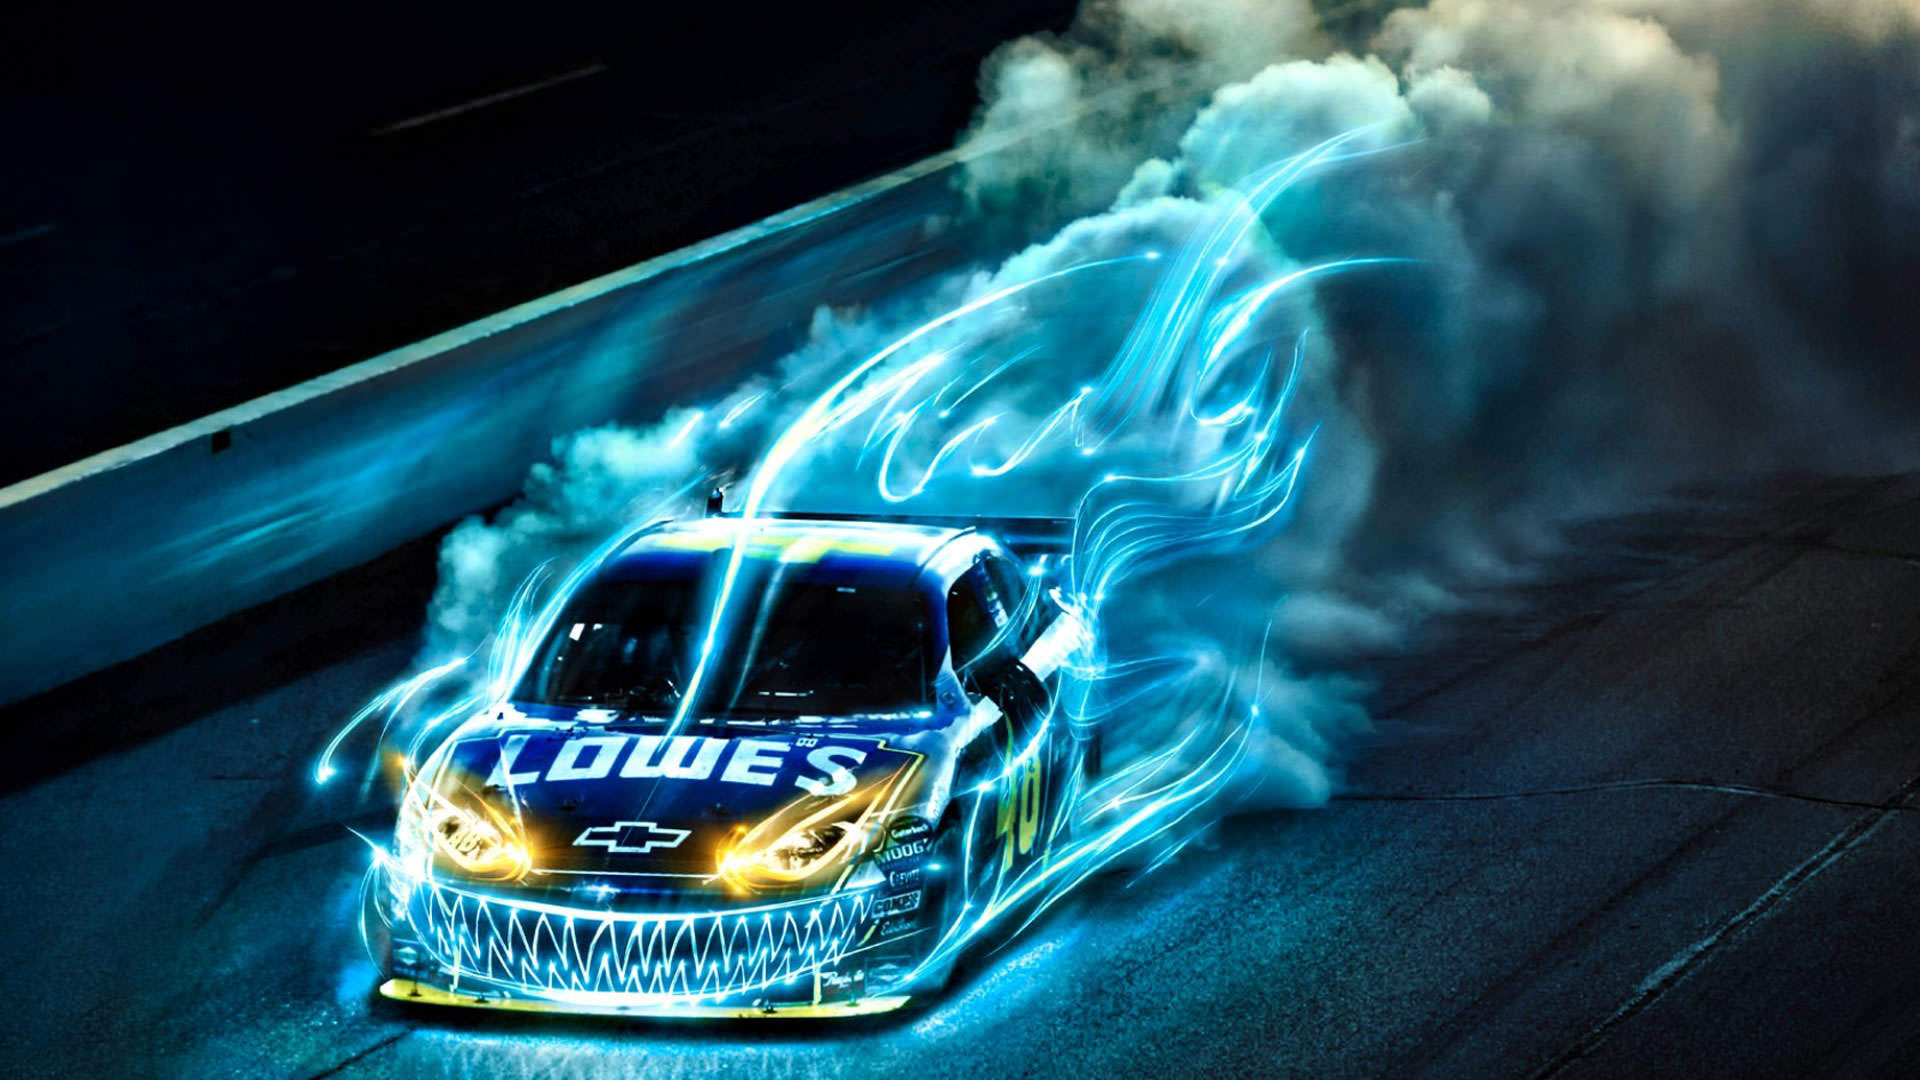 the most unique drag race car wallpaper